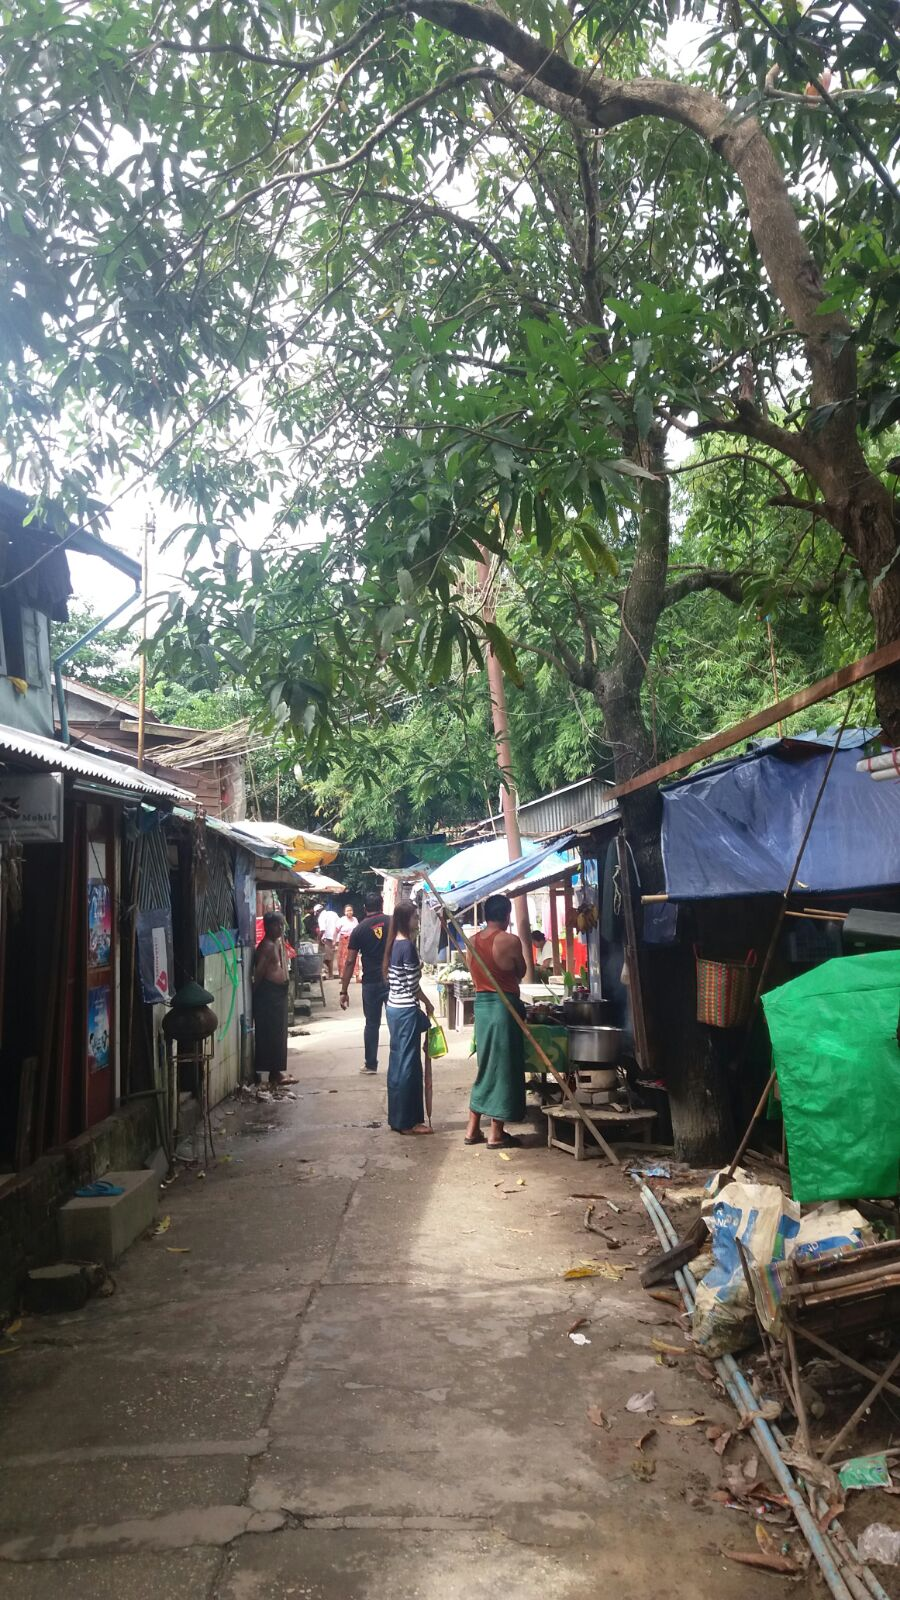 Daily goings-on at the wet market.